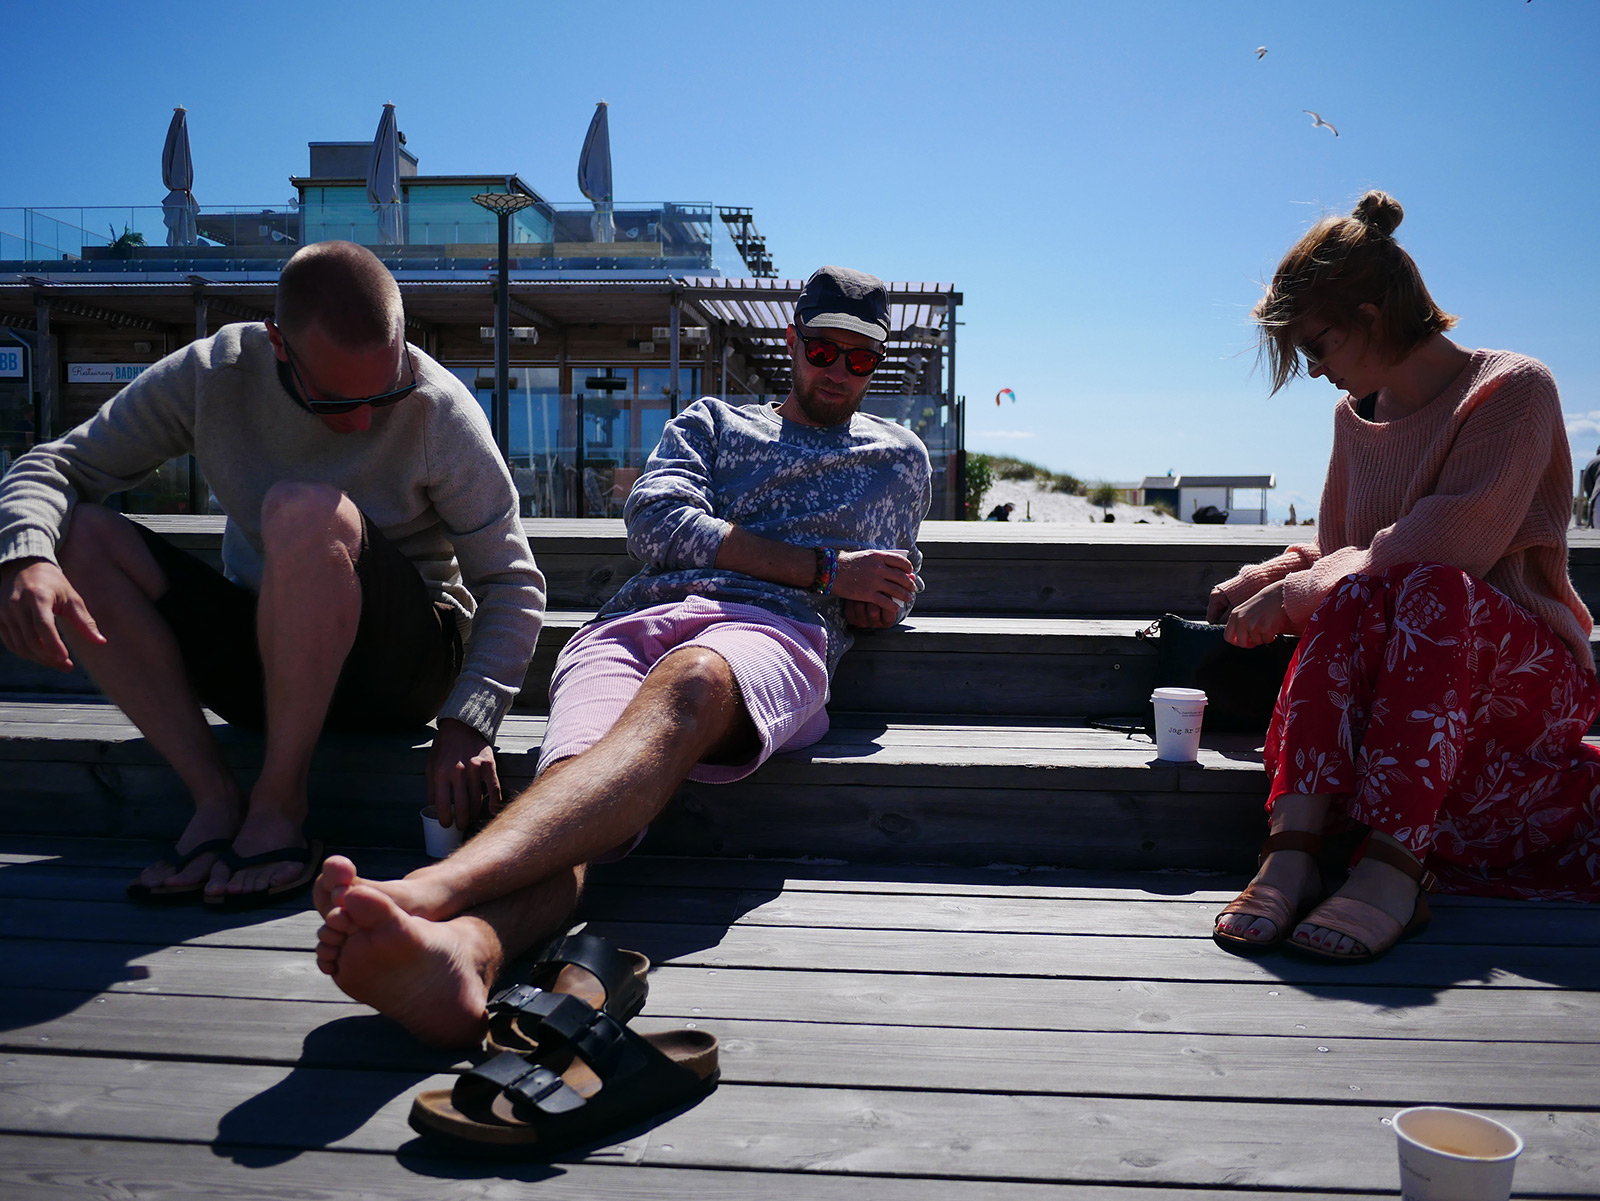 Friends enjoying the sun on a wood deck at Skanor marina.